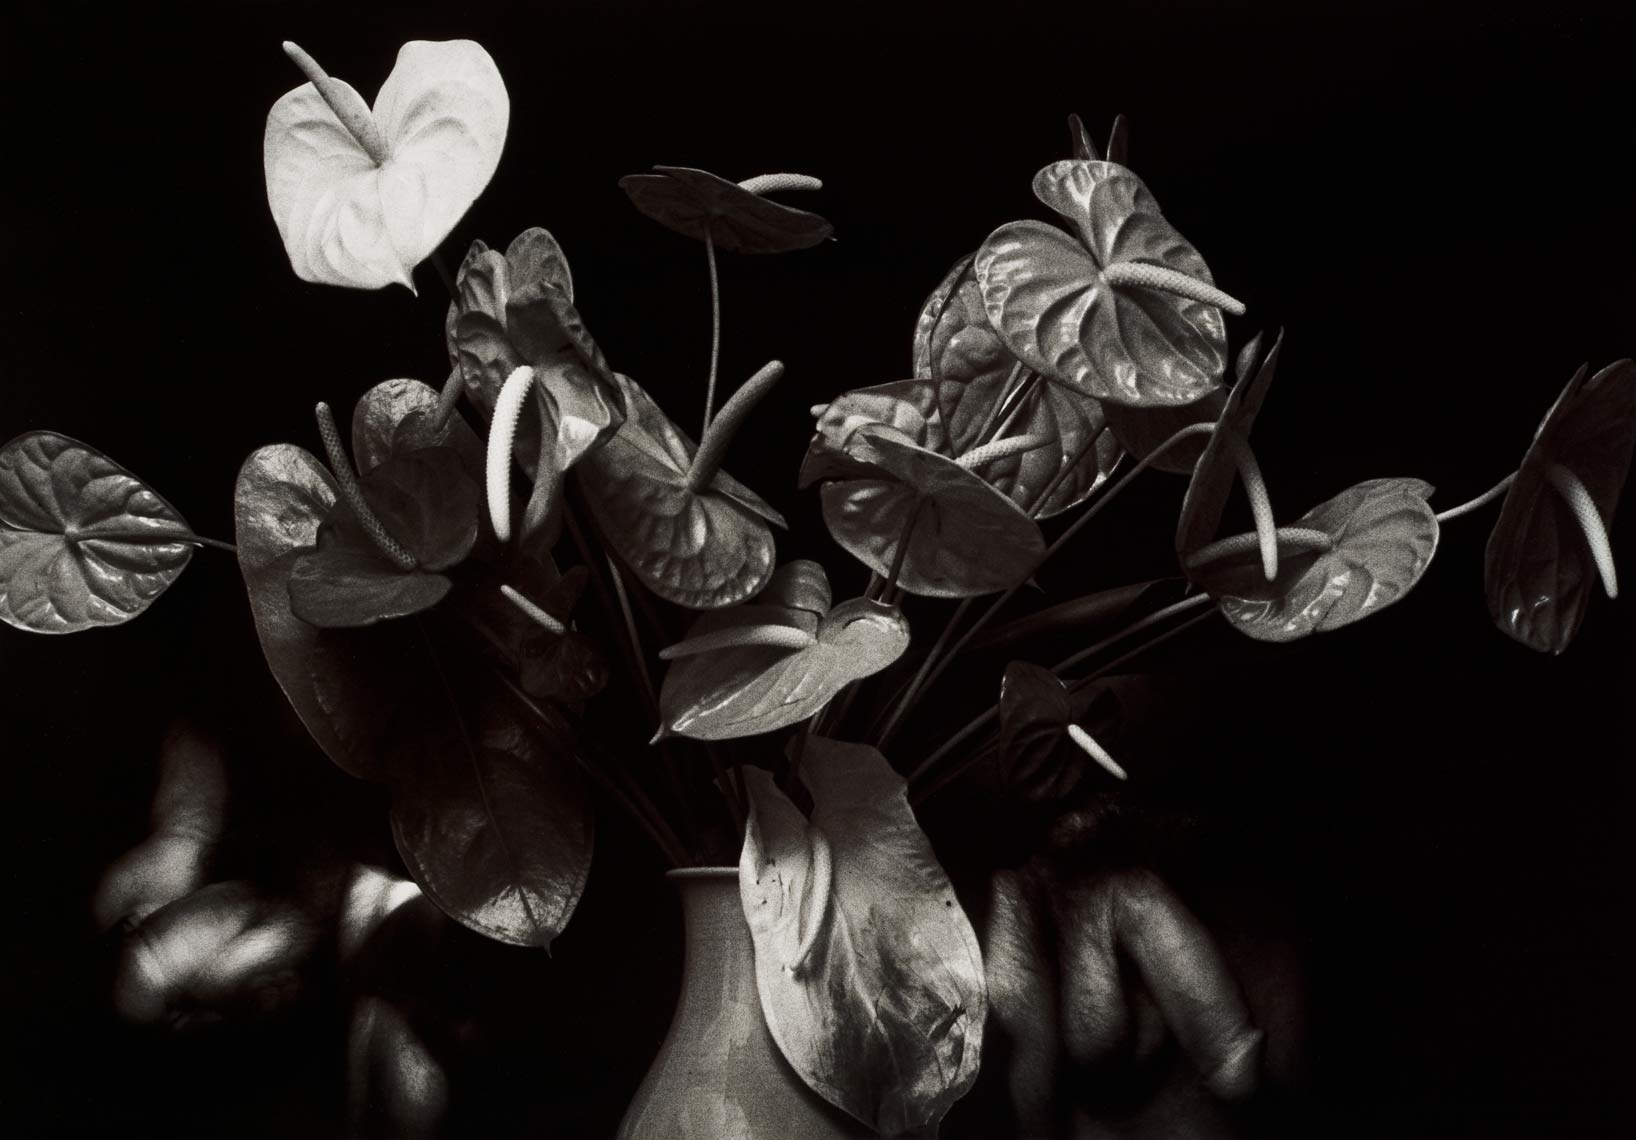 David Lebe; Anthurium Display, 1988, male nude, black and white photograph